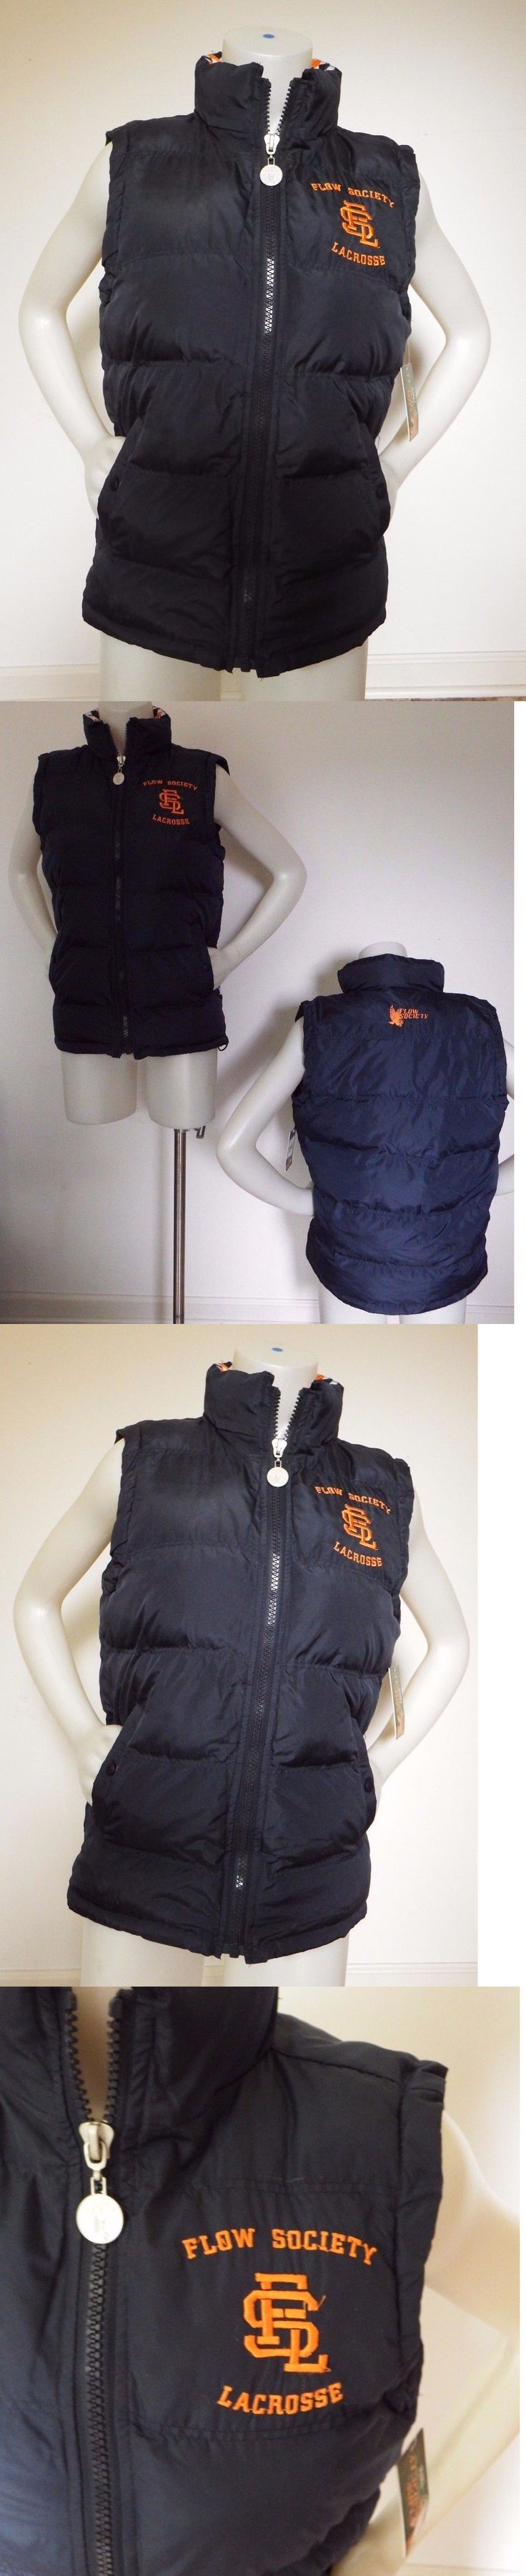 Clothing 159152: Flo Society Youth Small Argyle Puffer Vest Insulated Lacrosse Gear Navy -> BUY IT NOW ONLY: $65 on eBay!